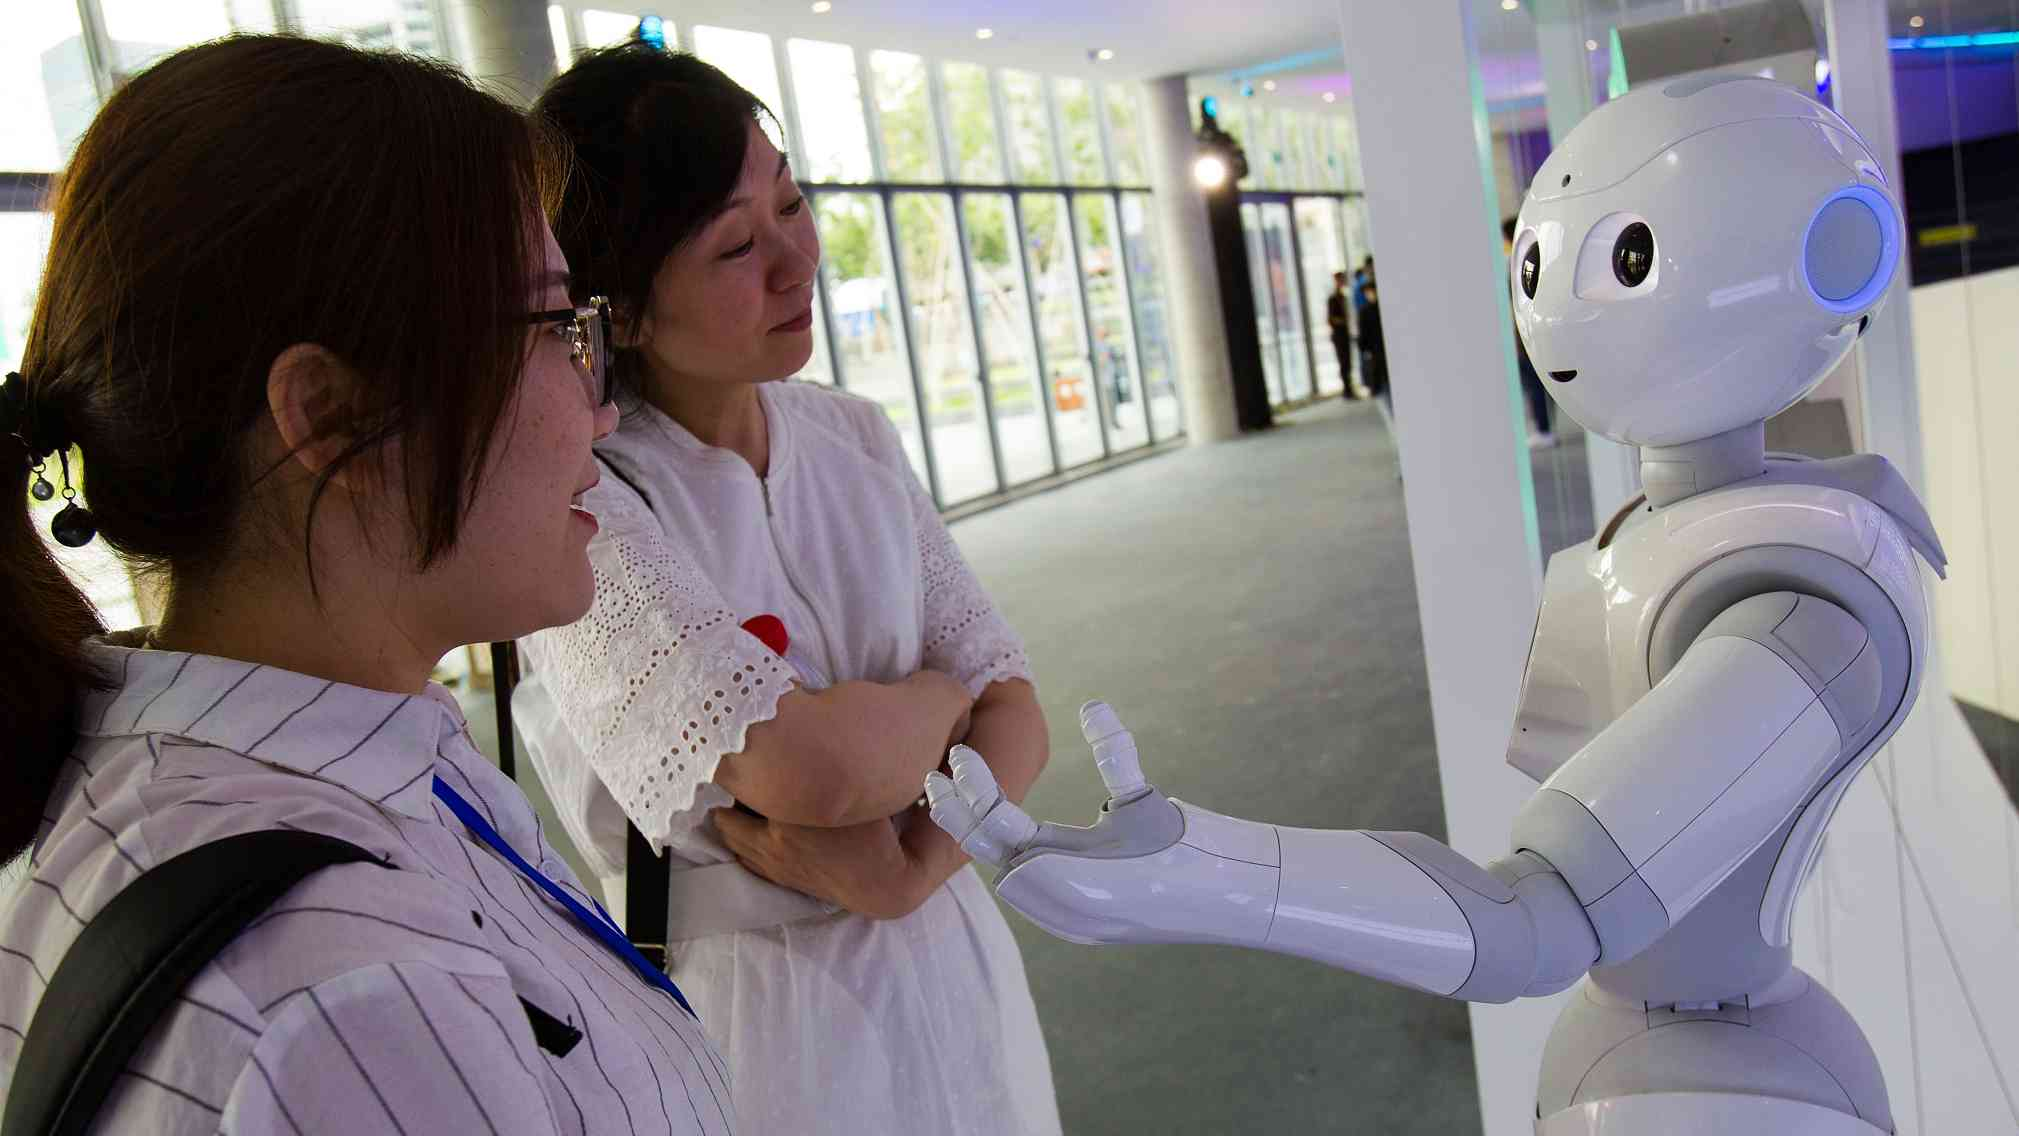 Xi says China willing to cooperate with other countries in AI industry